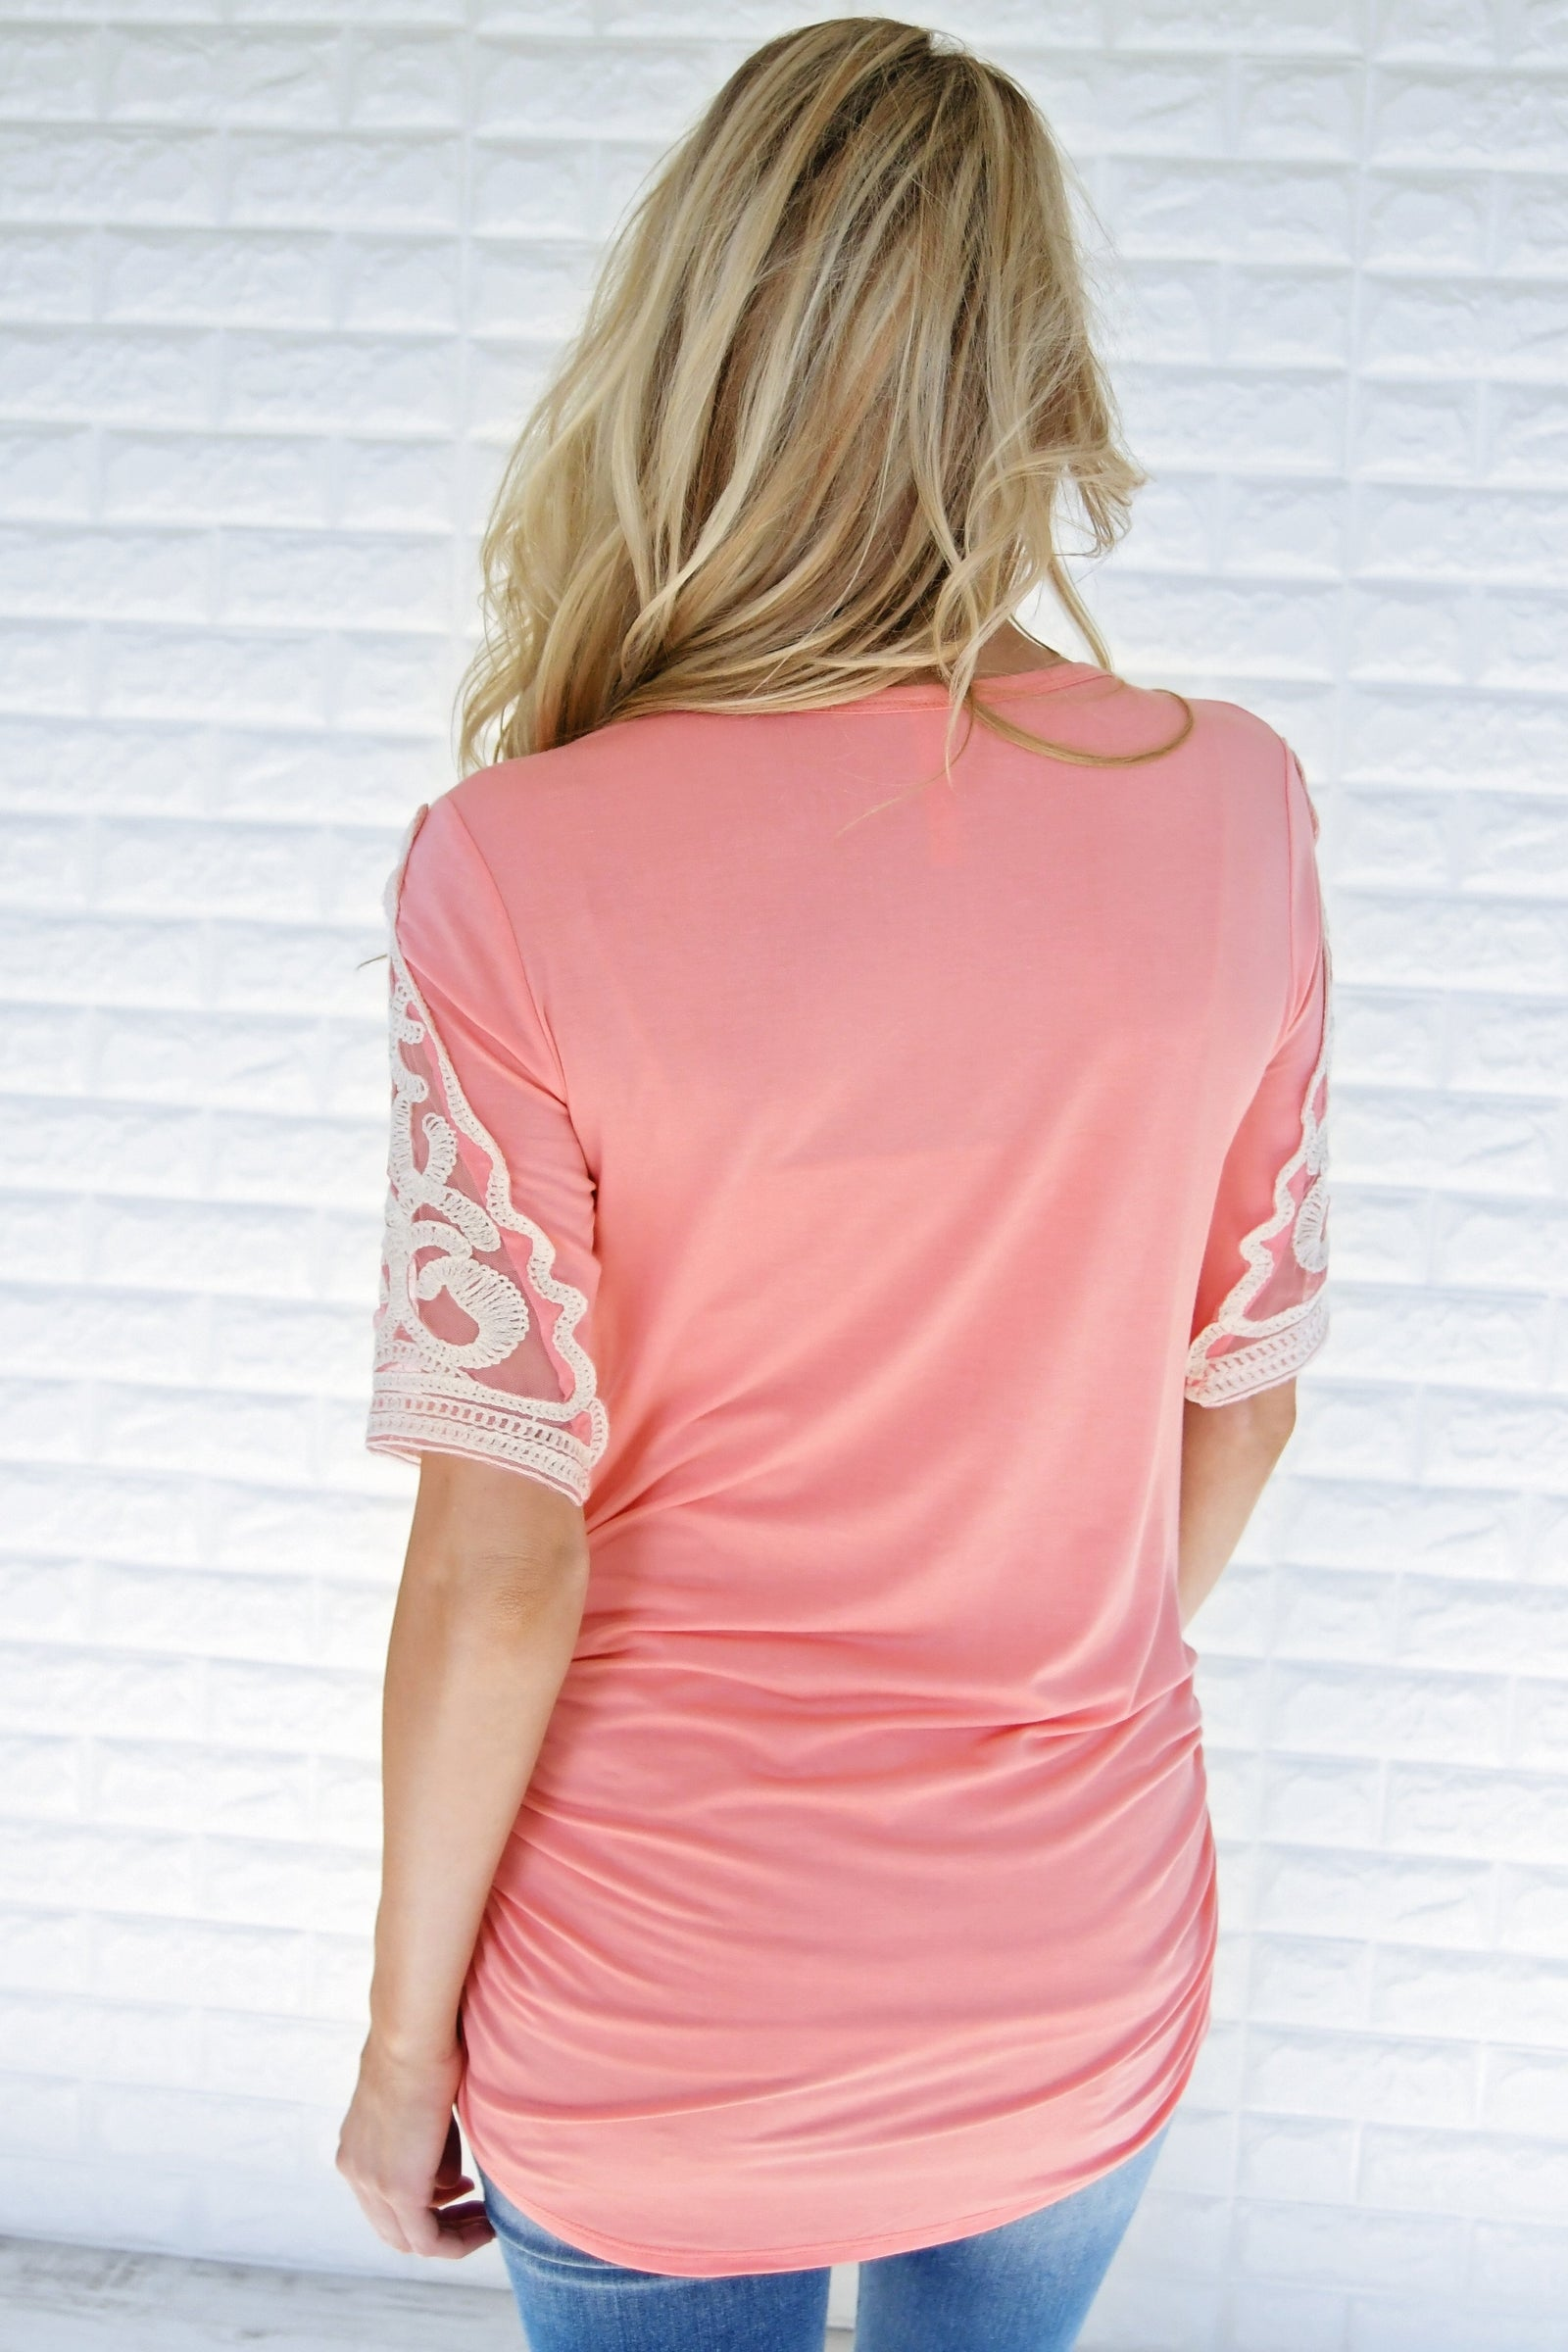 Shear Glamour Top ~ Soft Coral